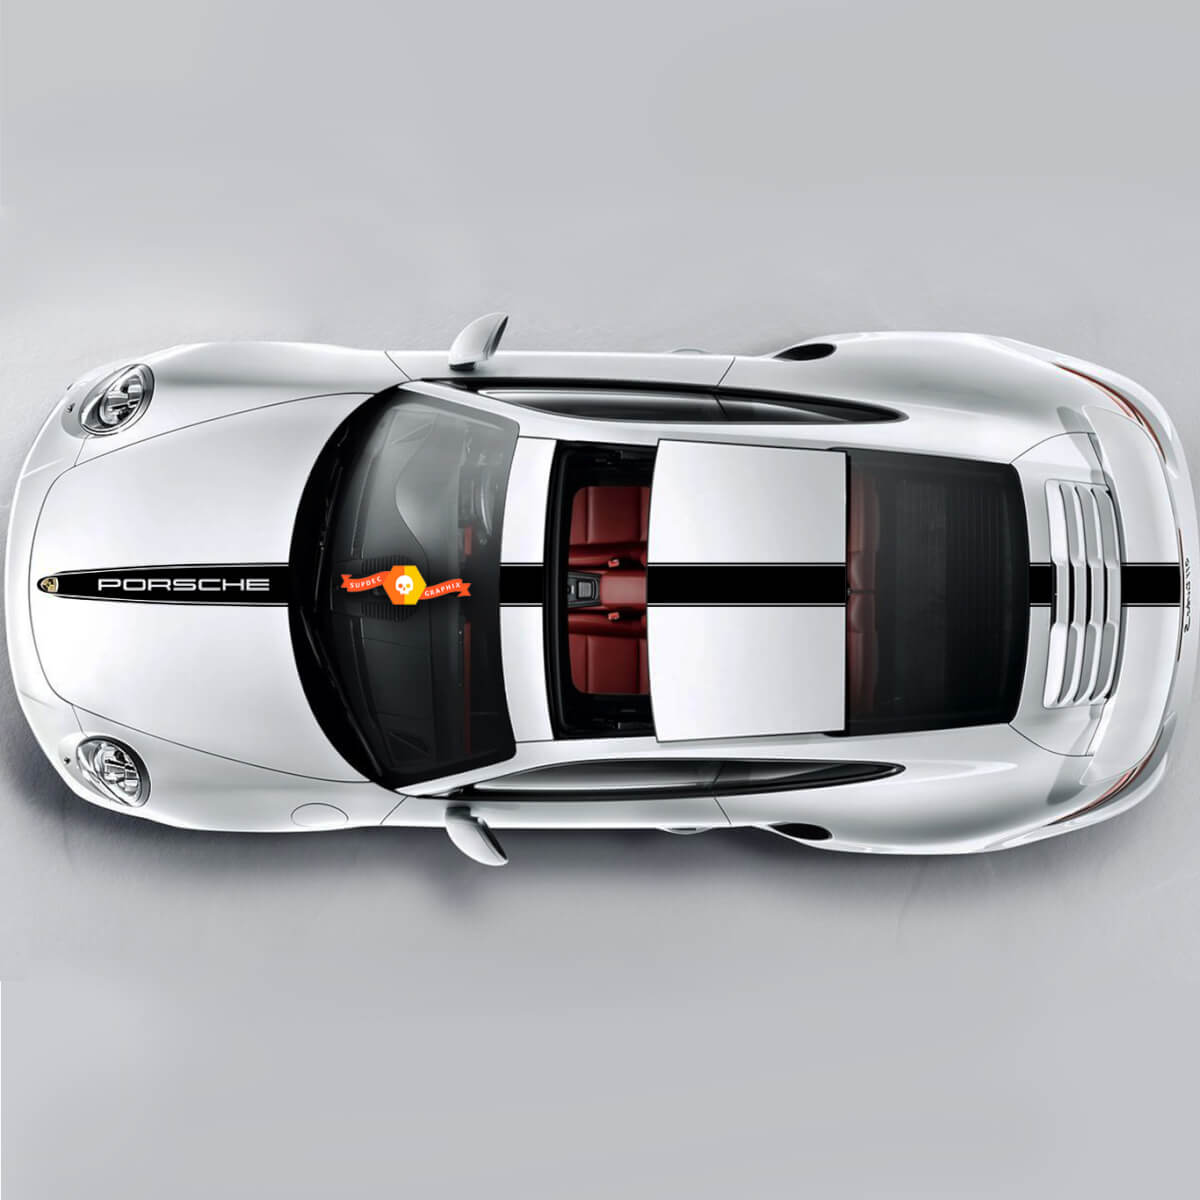 One Color Racing Stripe Over The Top Roof Porsche For Carrera Or Any Porsche